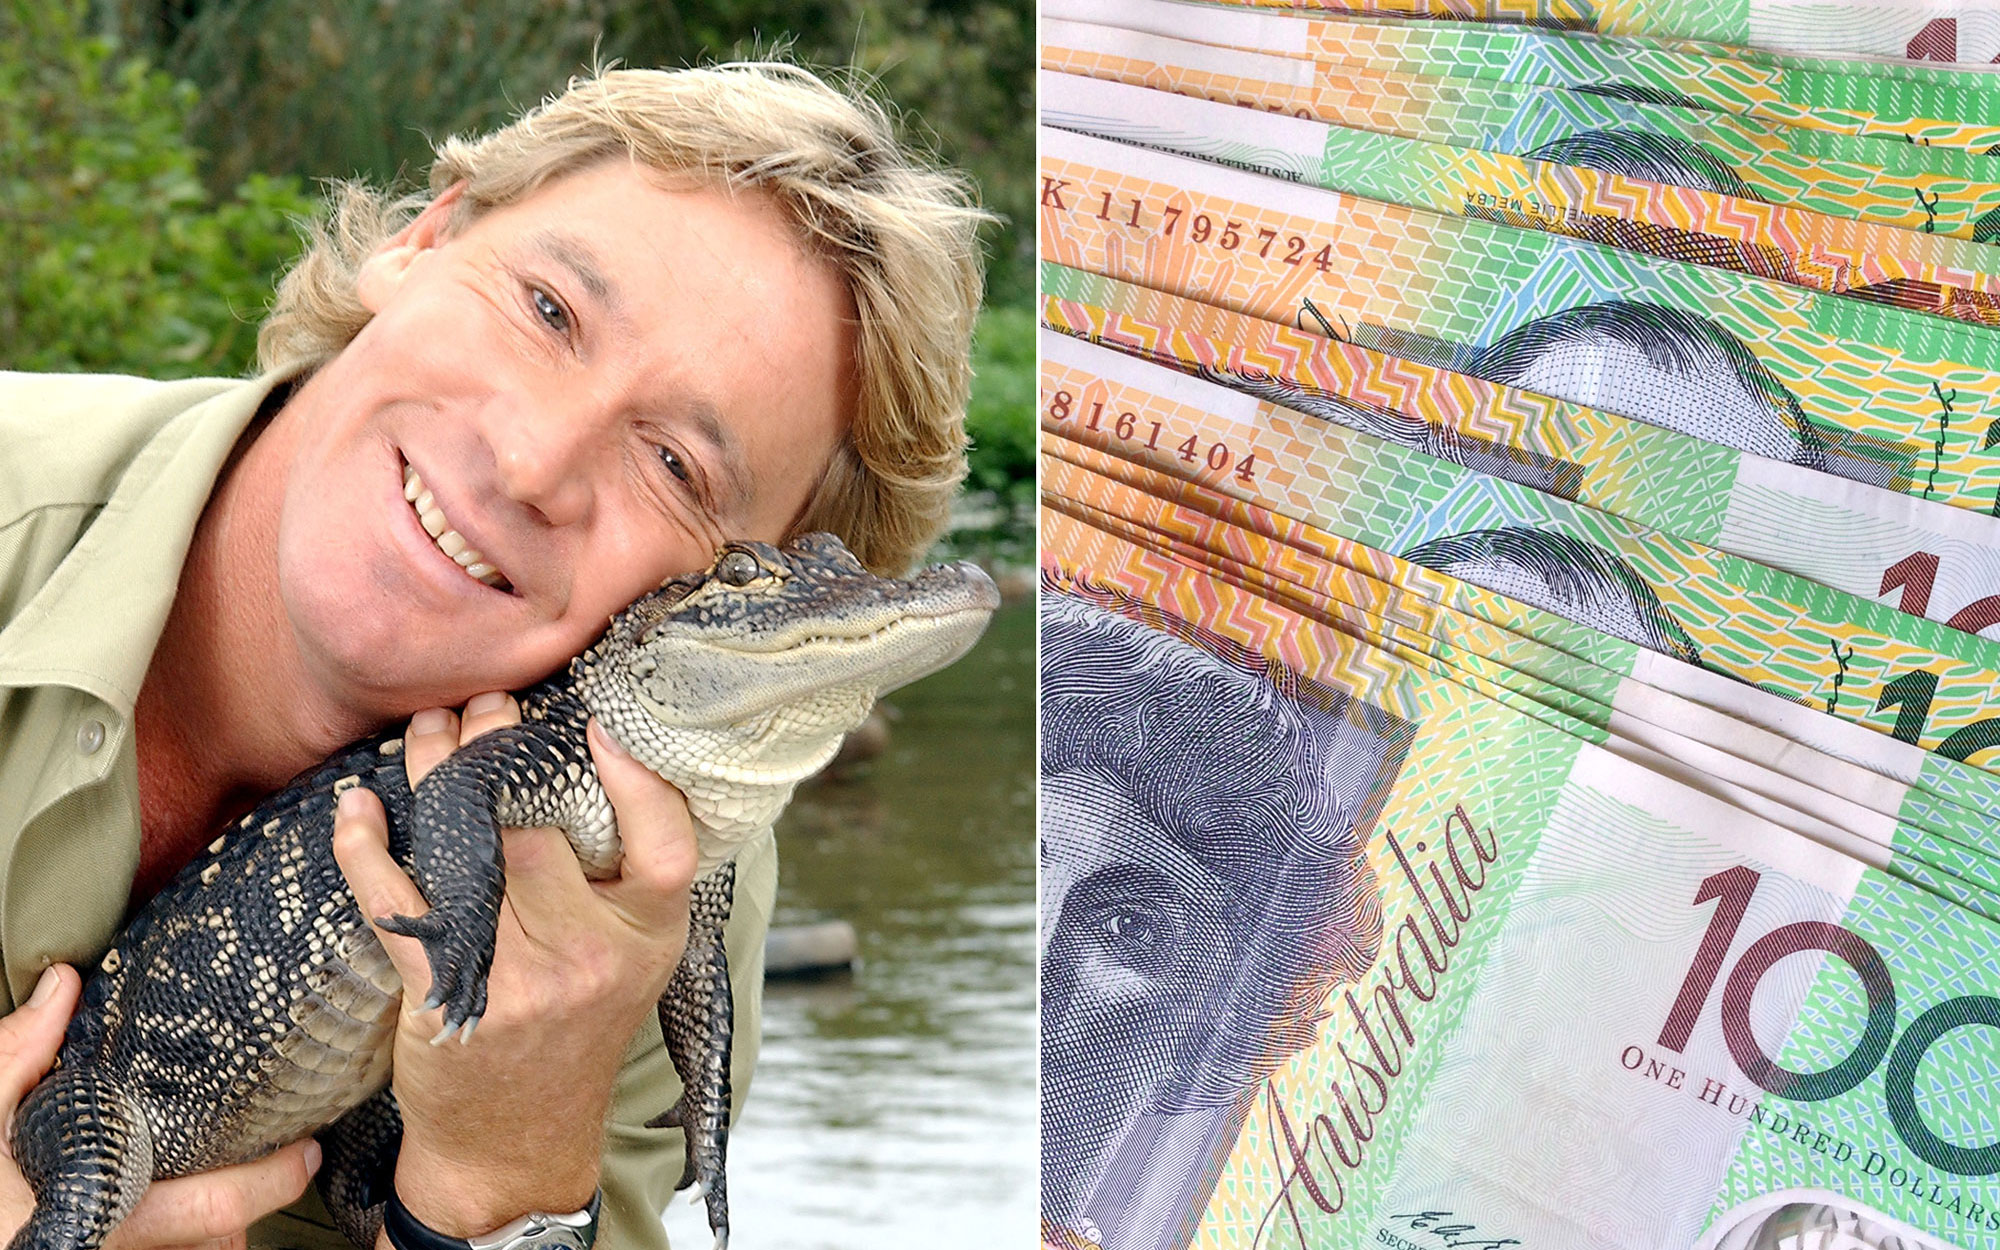 Petition for Steve Irwin to Appear on Australian Currency